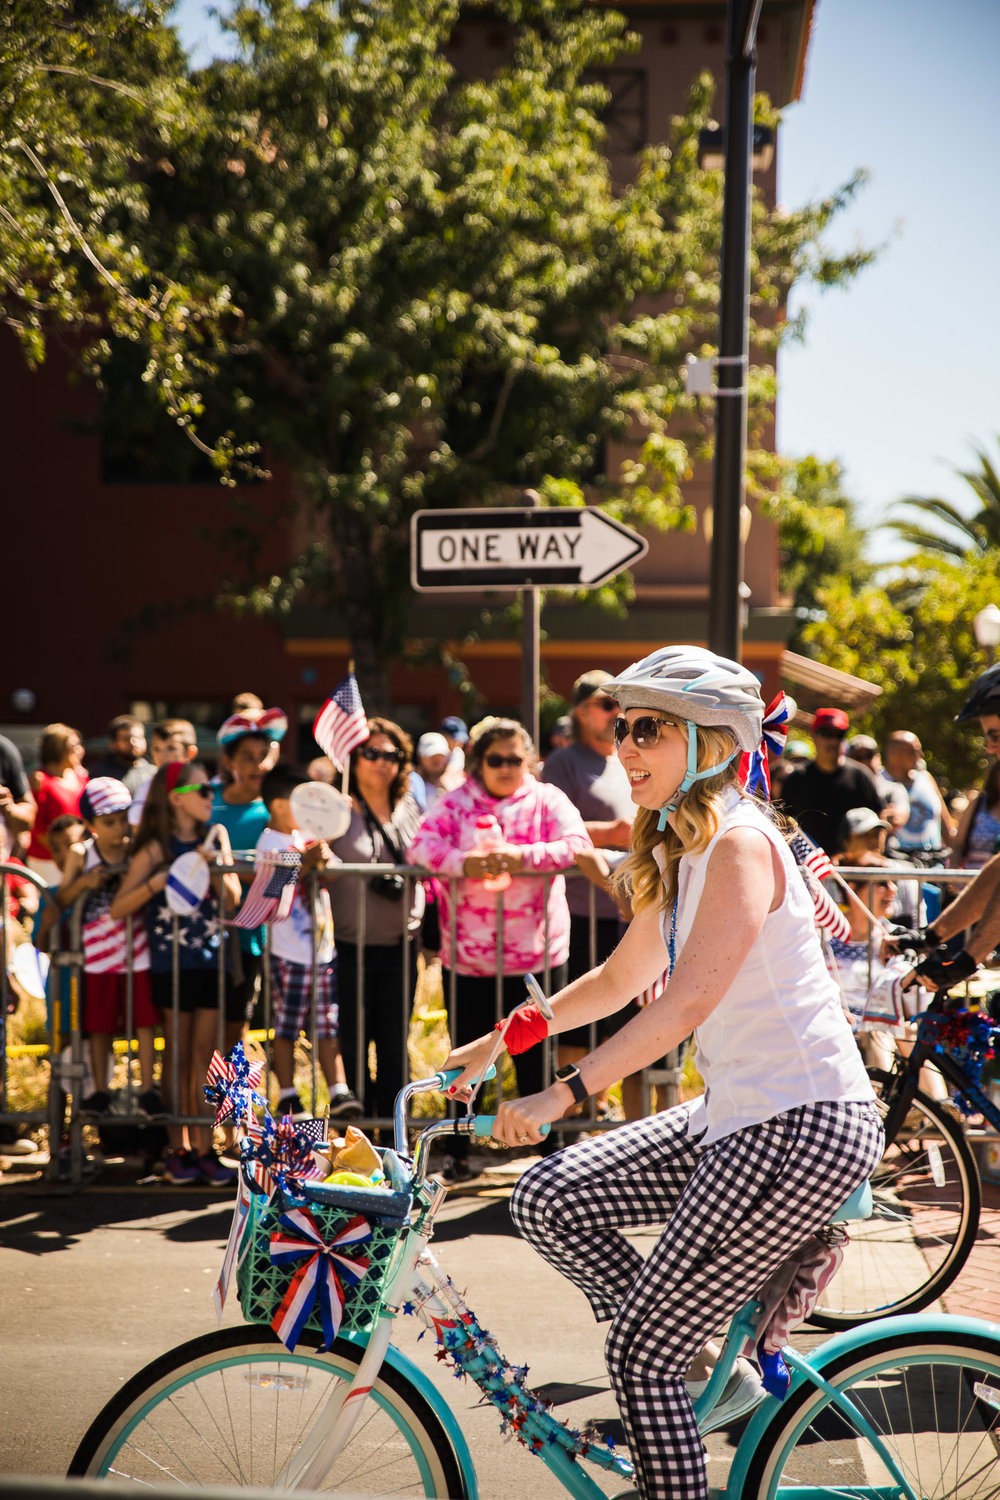 Archer_Inspired_Photography_Morgan_Hill_California_4th_of_july_parade-85.jpg